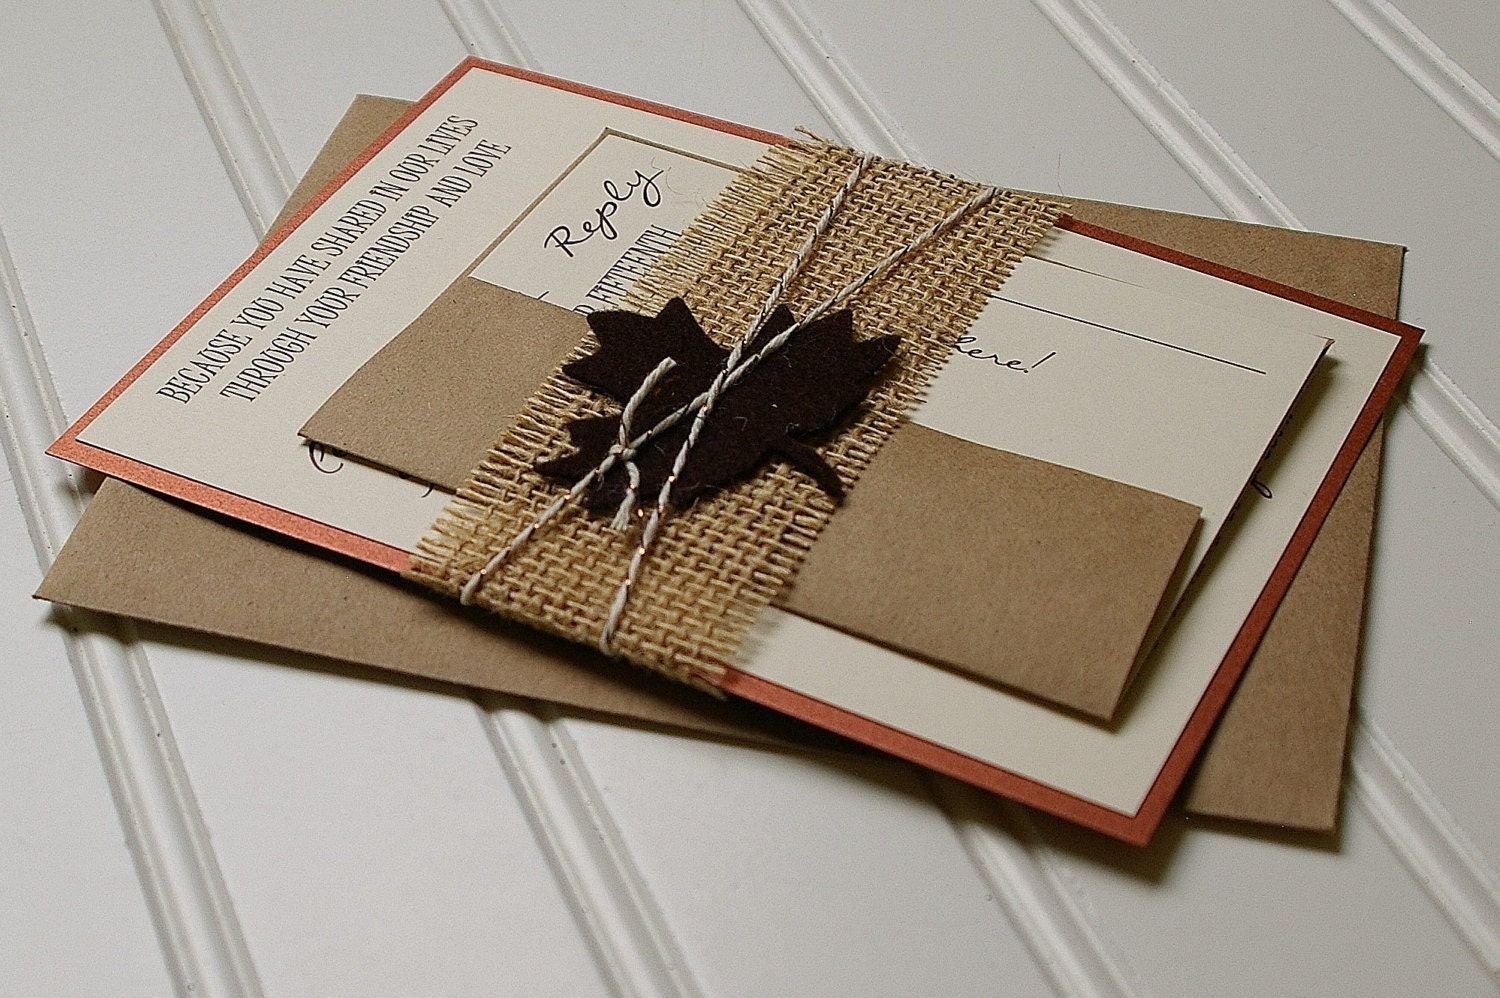 Wedding Invitations With Burlap: Rustic Autumn Wedding Invitations: Copper Brown And Burlap